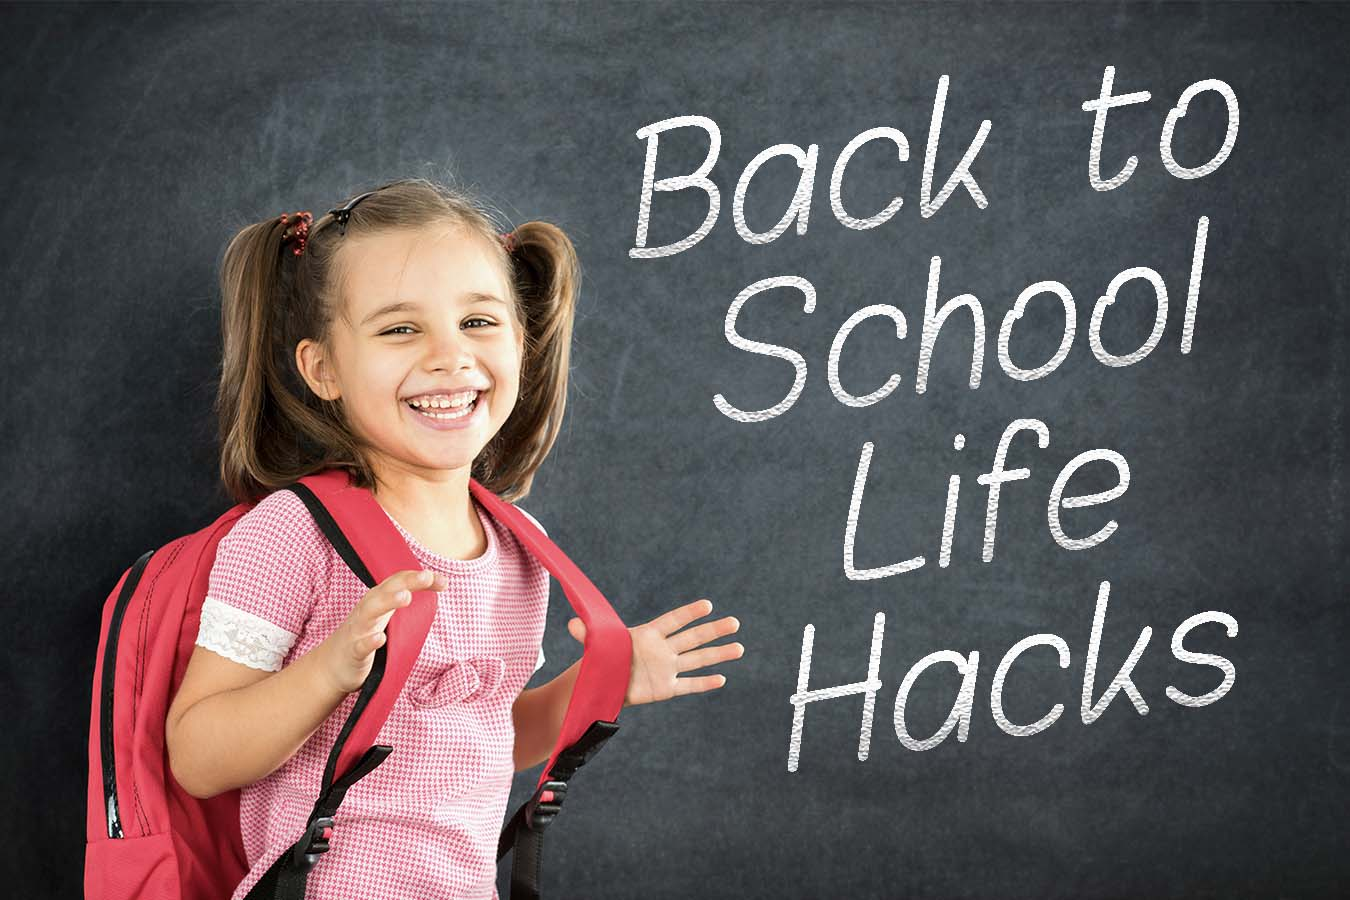 10 Best Back to School Hacks